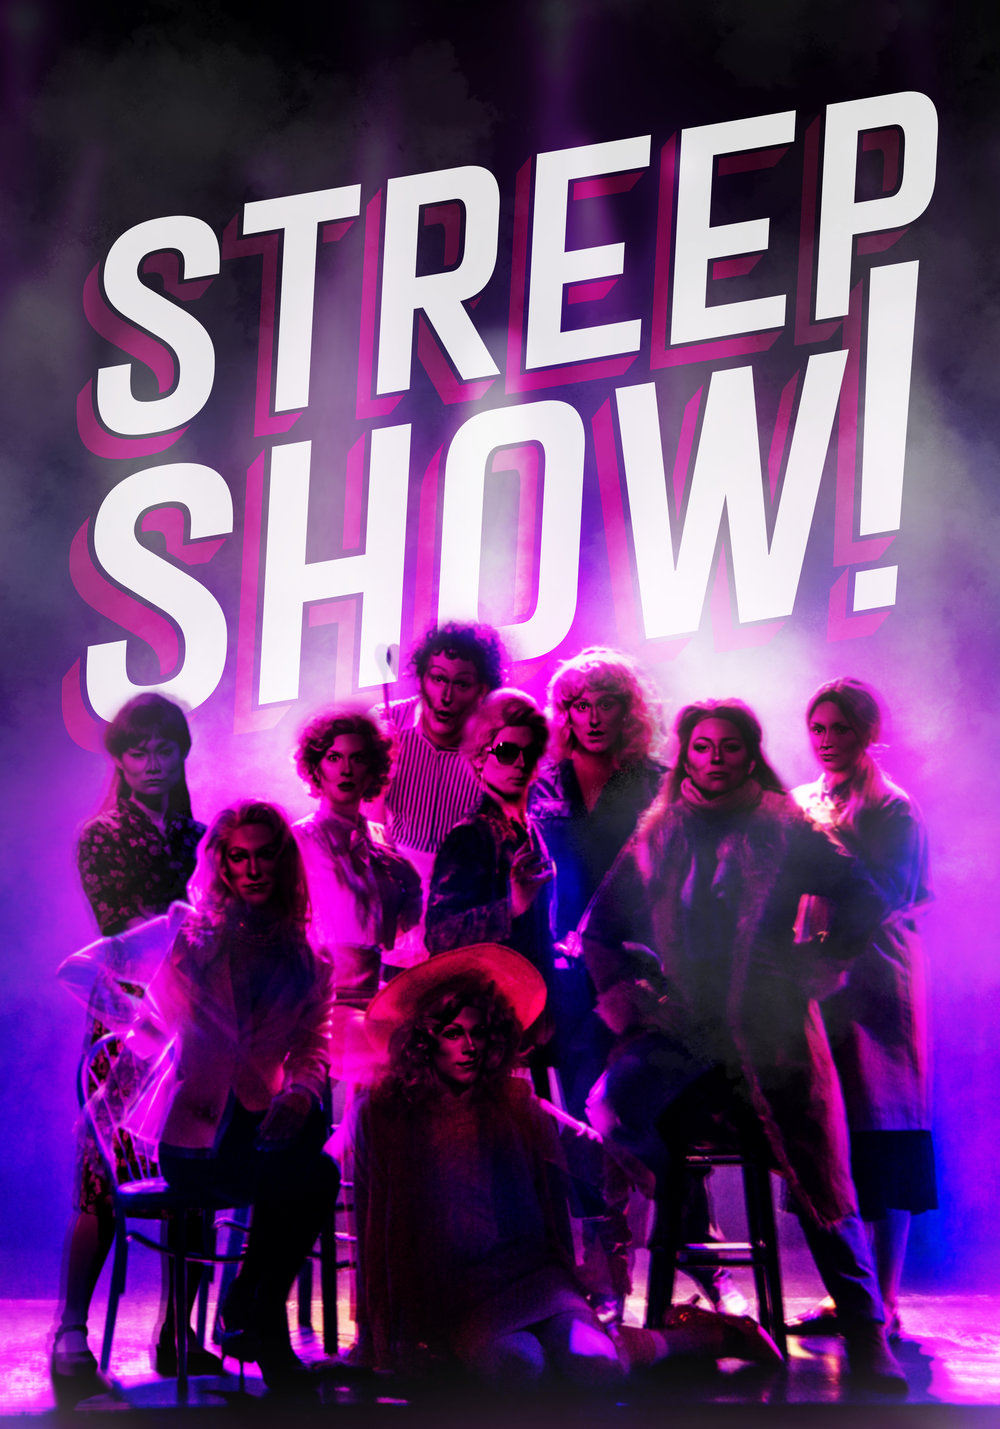 STREEPSHOW_artwork_14x20_2.jpg